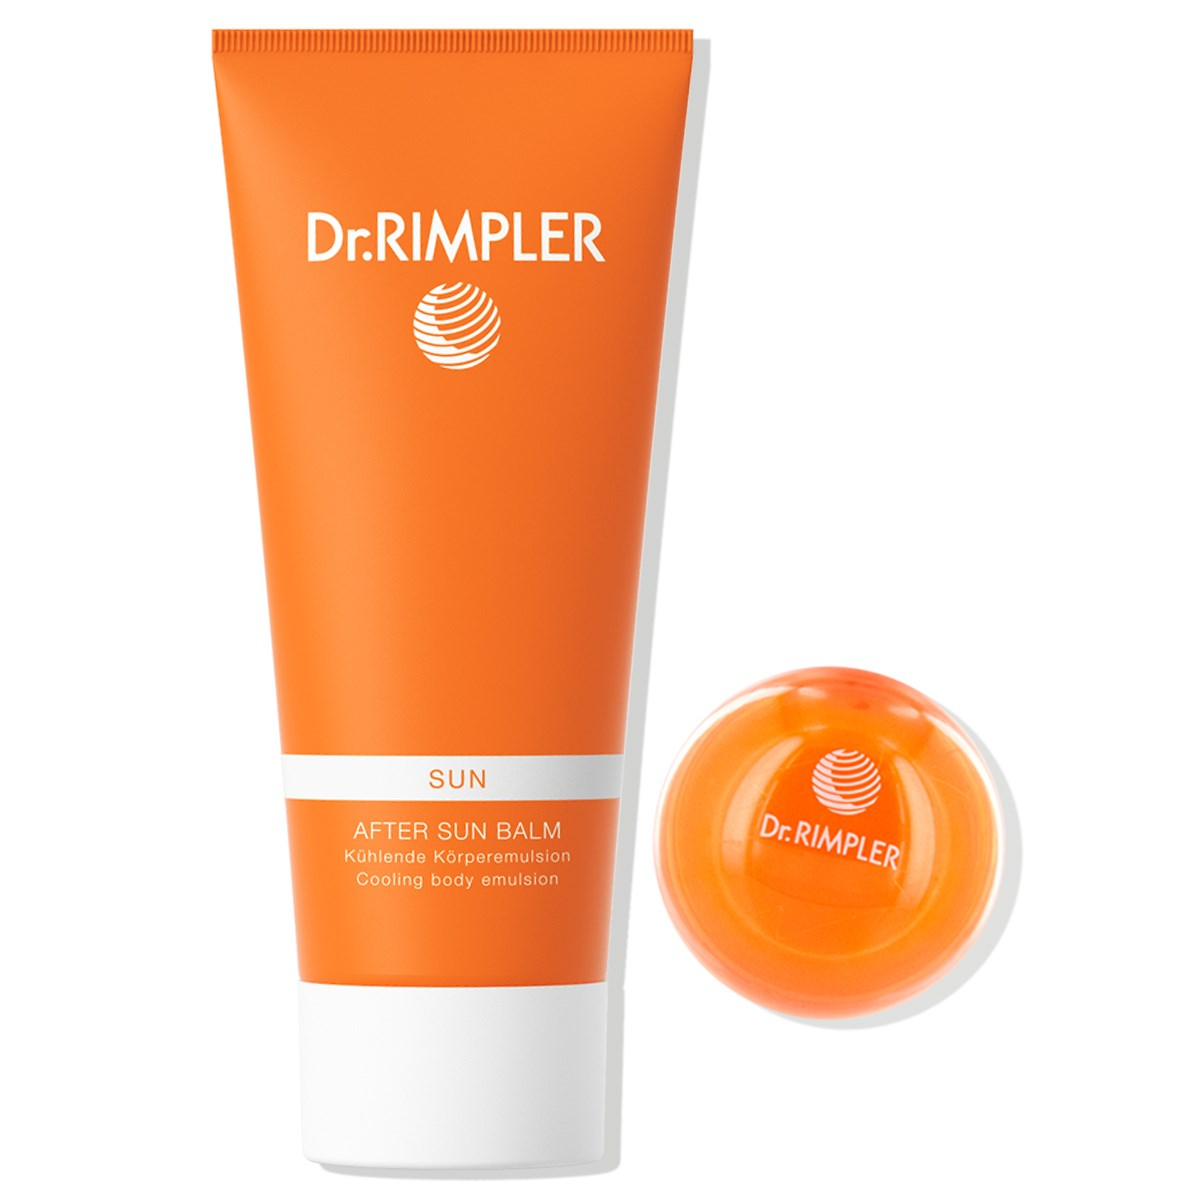 DR RIMPLER AFTER SUN 200ml + GRATIS LIPBALM